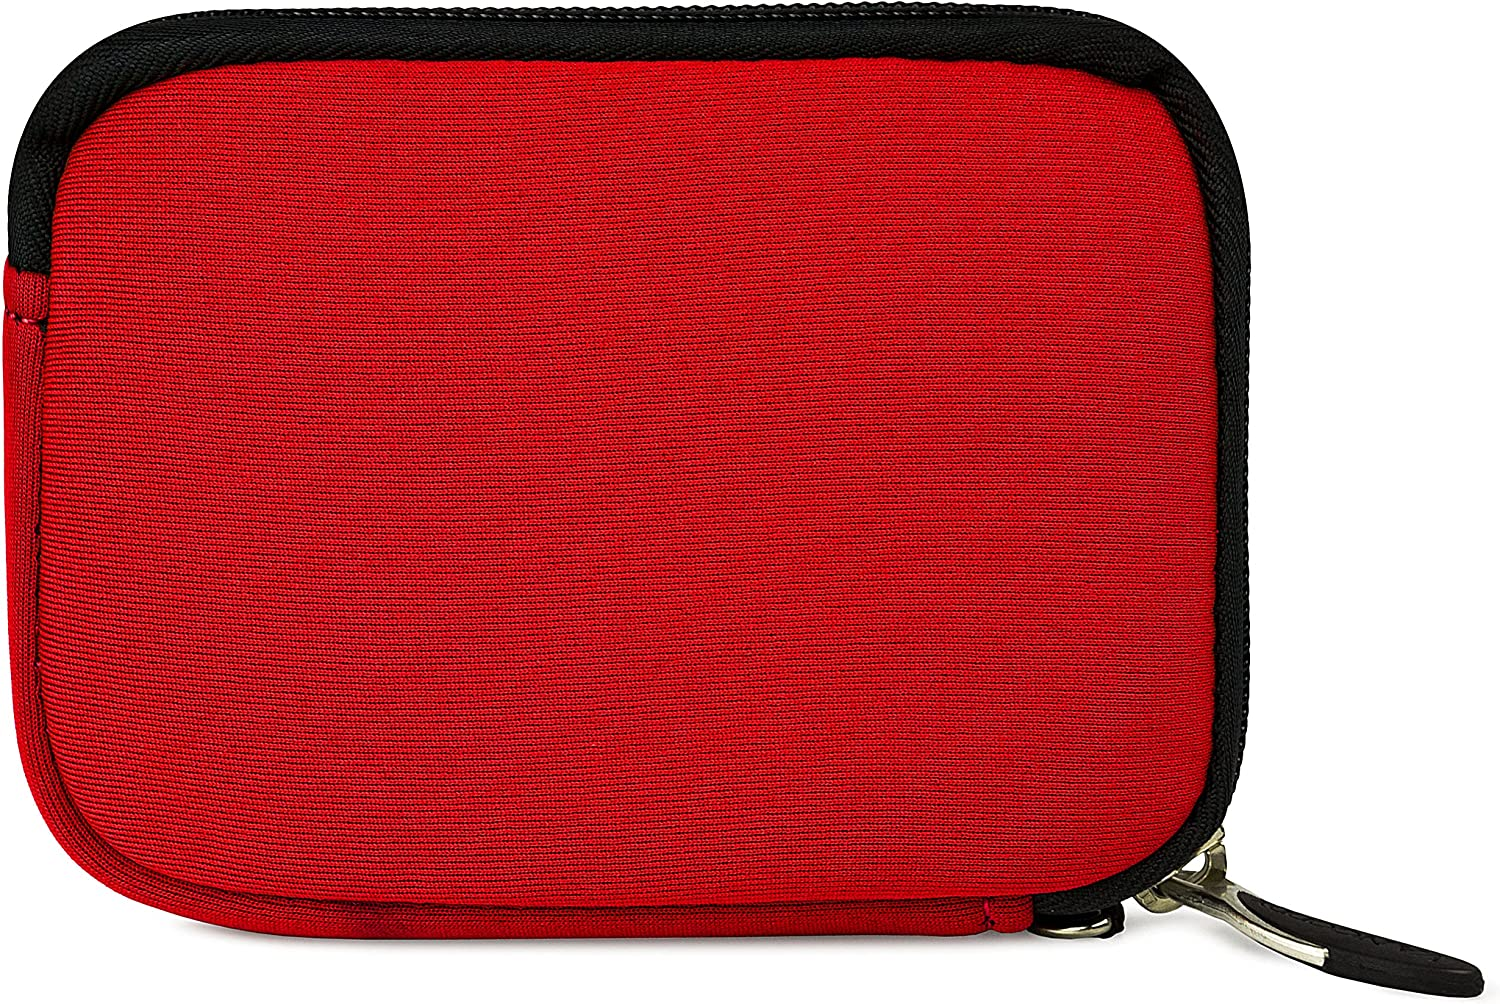 VanGoddy Mini Glove Sleeve Pouch Case for Nikon Coolpix Series Digital Cameras and Screen Protector Red